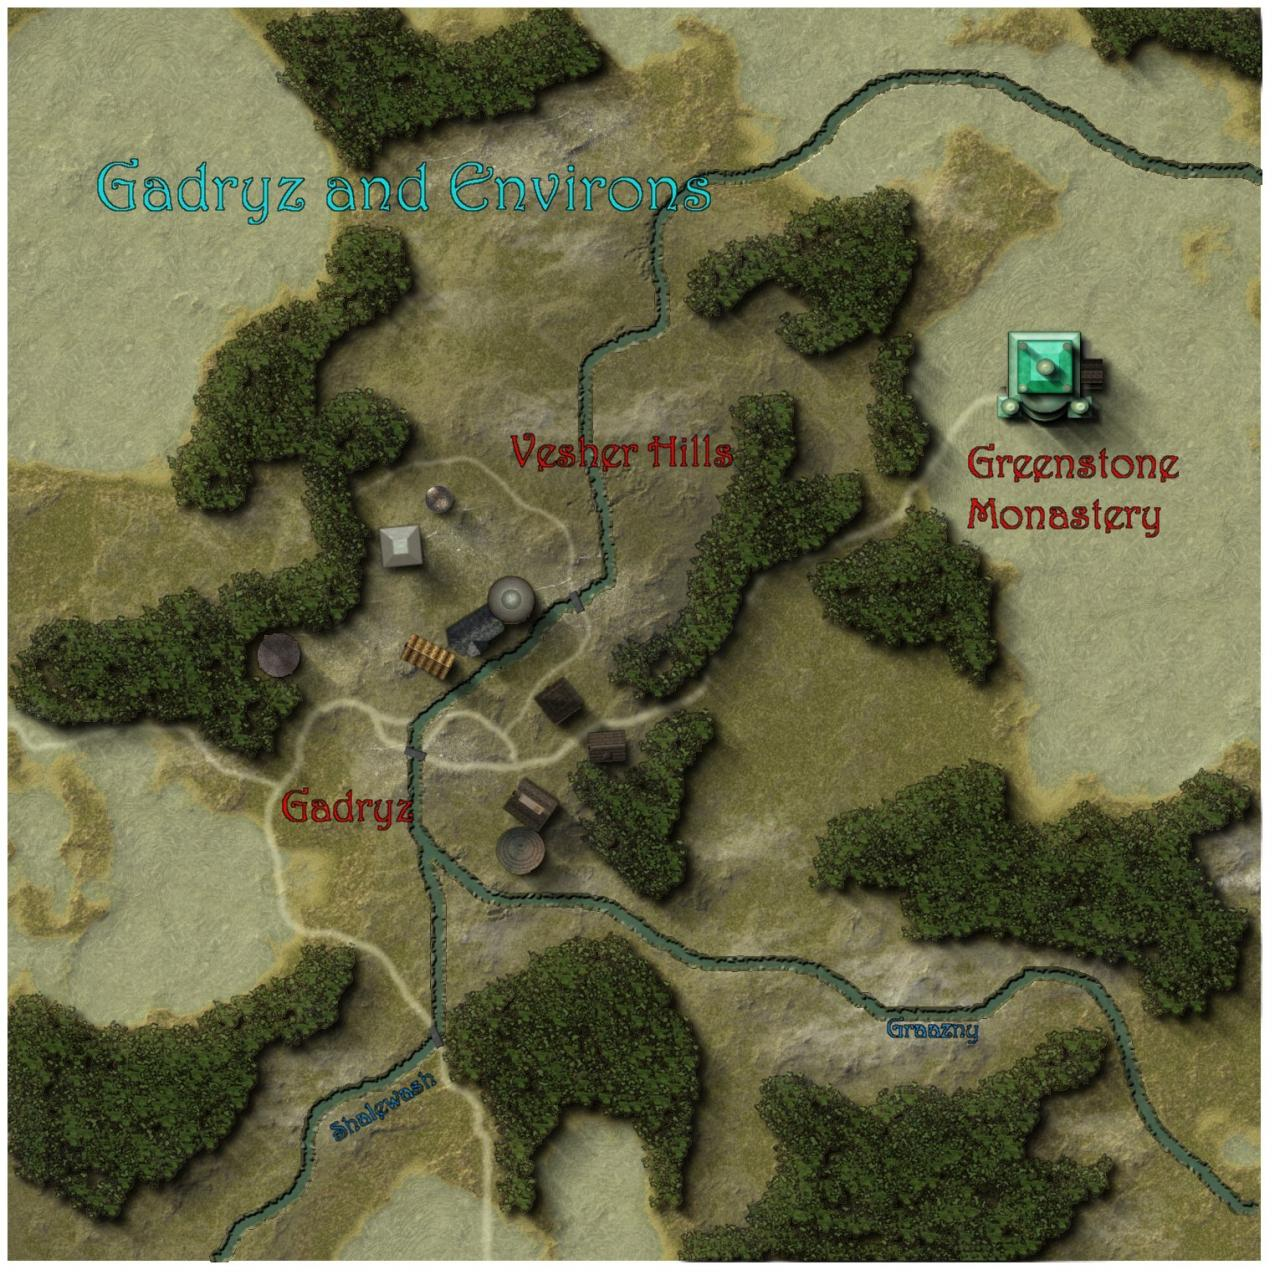 Part of the Challenge entry for October 2007, depicting the region in which the Greenstone Monastery is found.